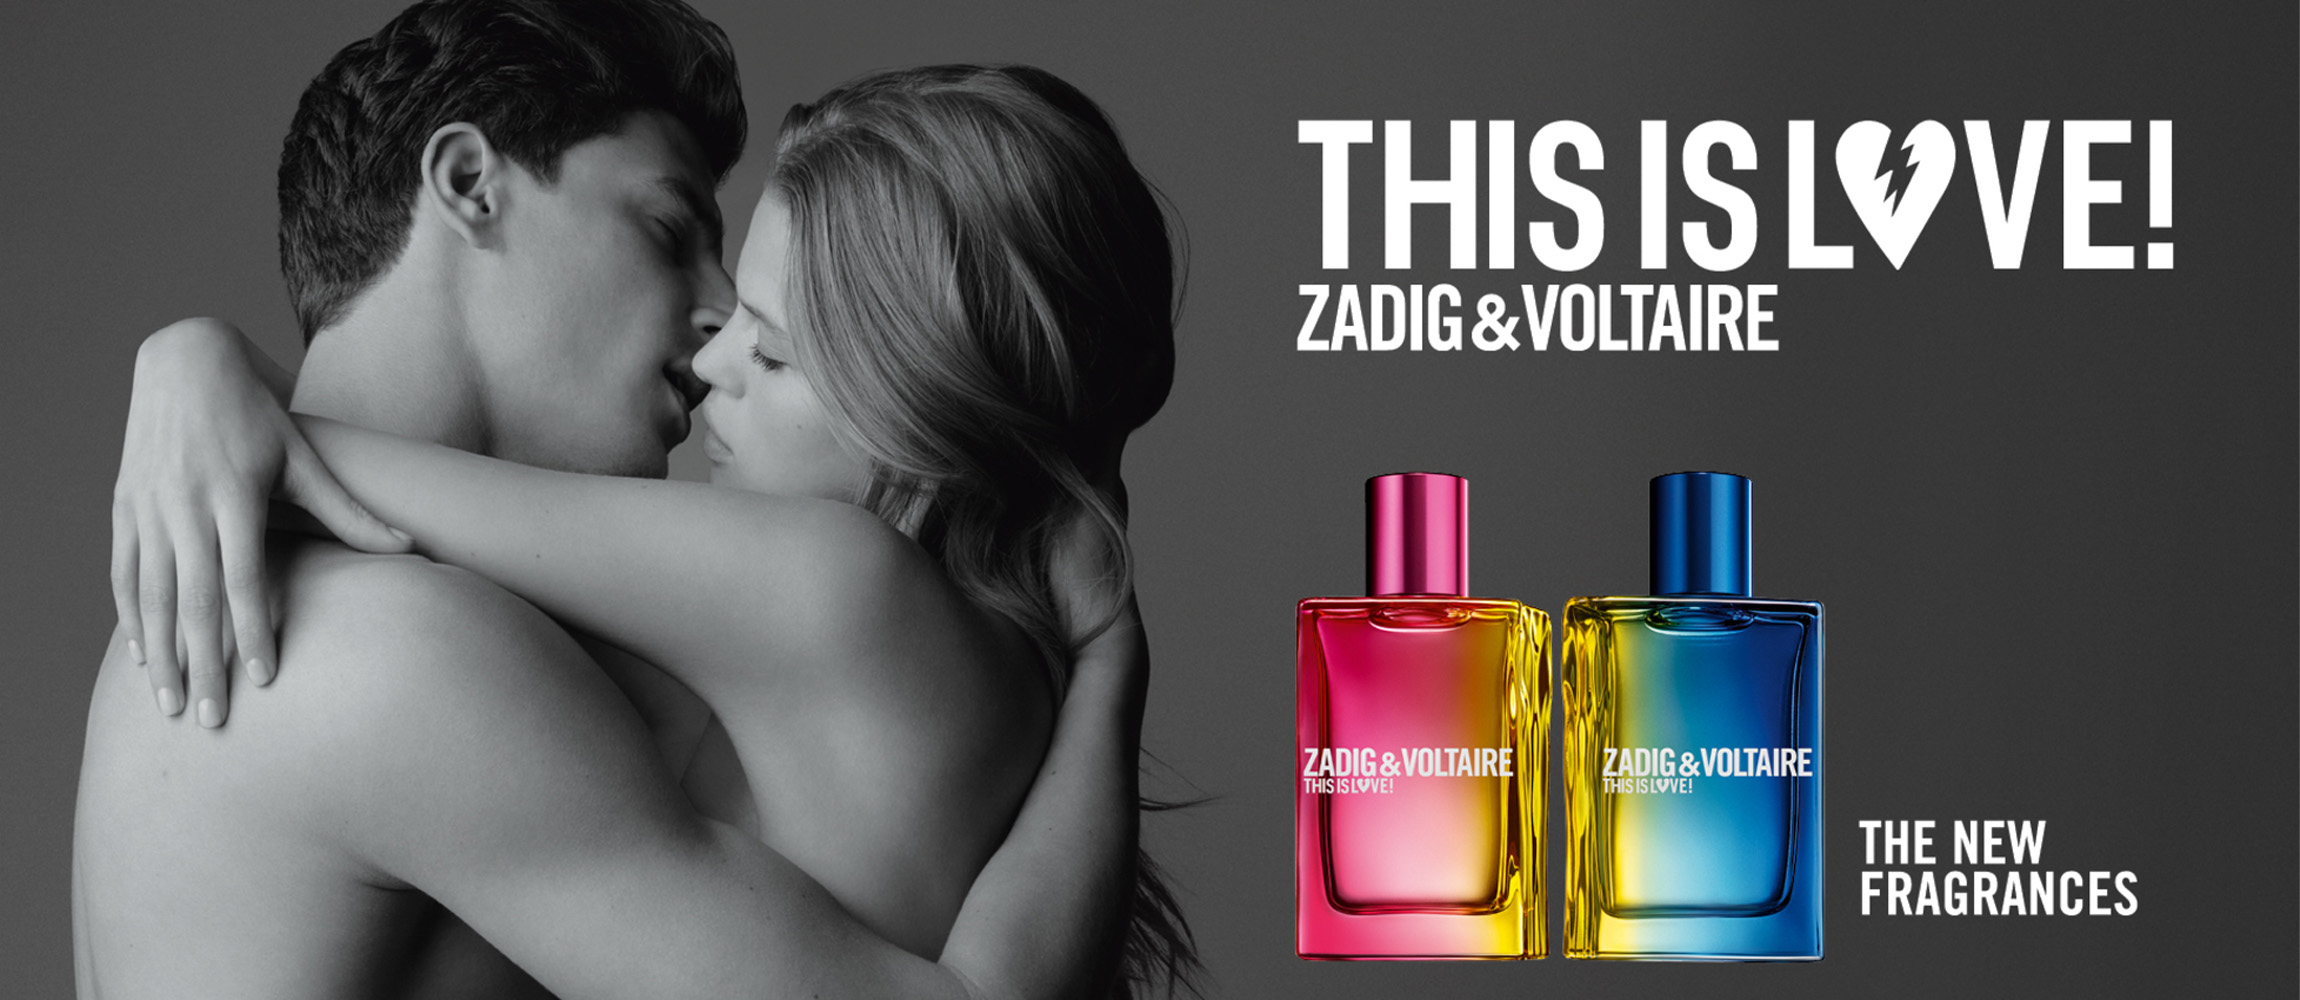 Zadig & Voltaire, This is love, perfume, Male, Female